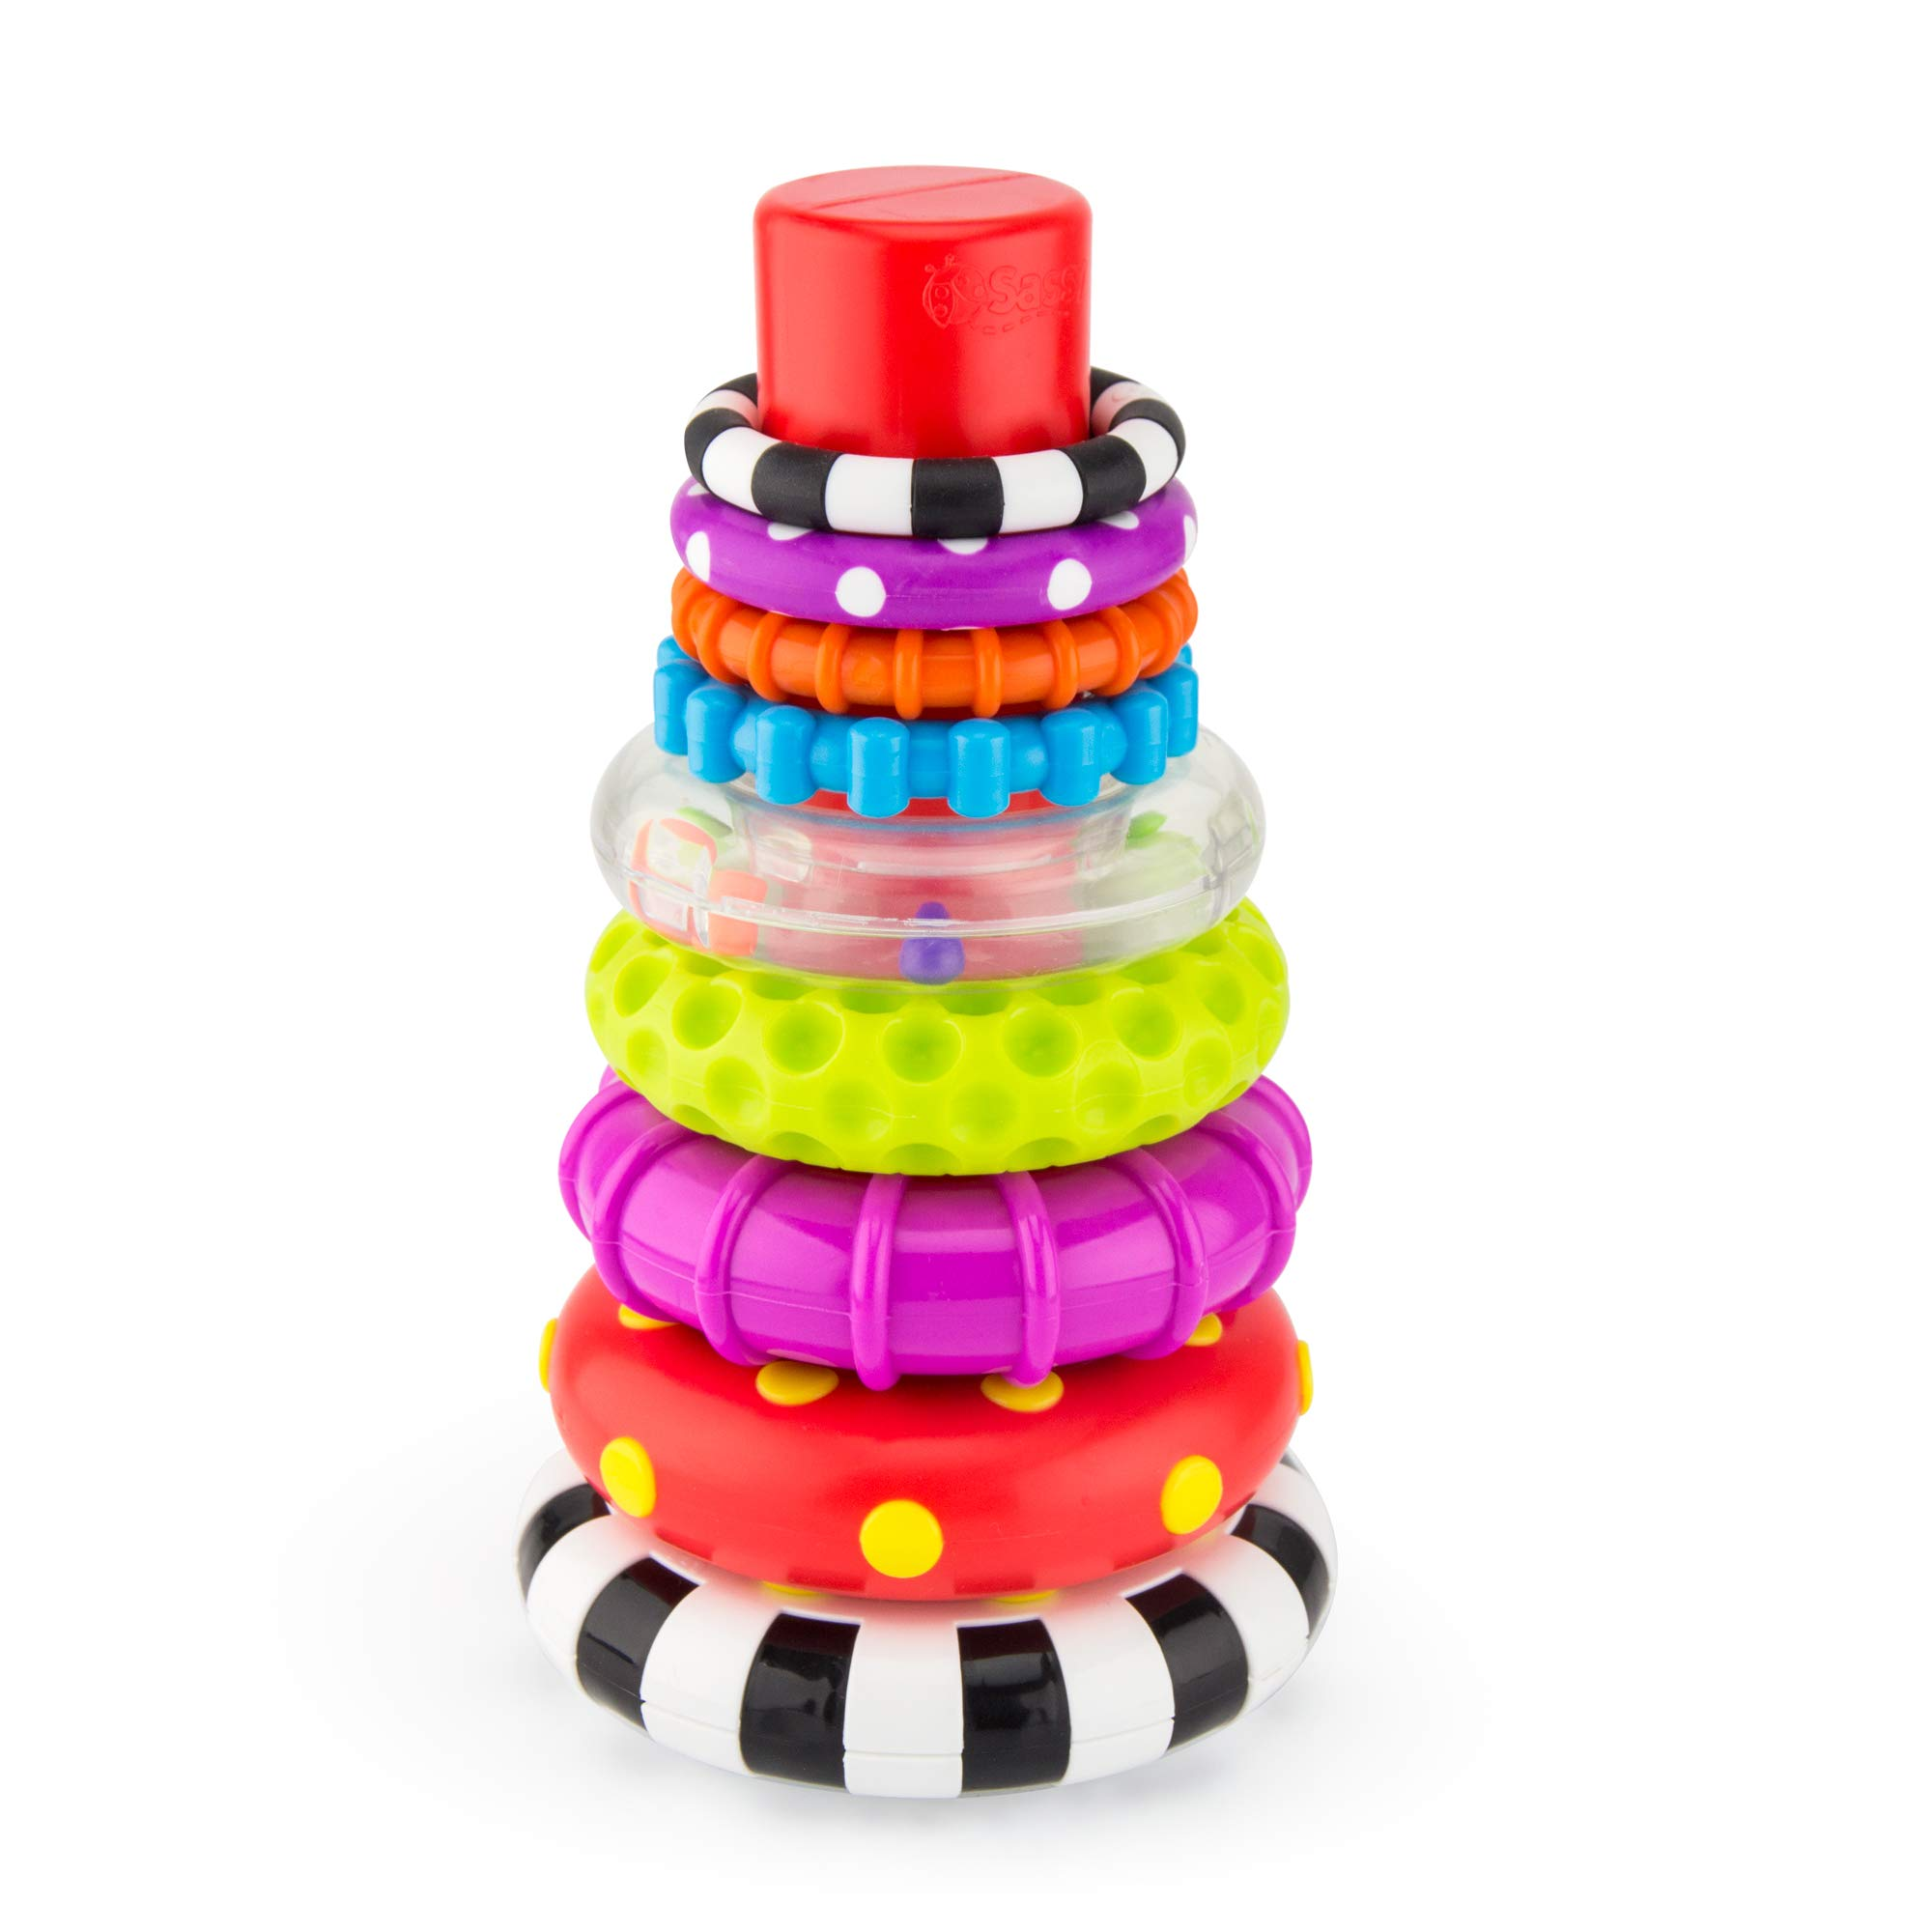 Sassy Stacks of Circles Stacking Ring STEM Learning Toy 9 Piece Set Age 6+ Months